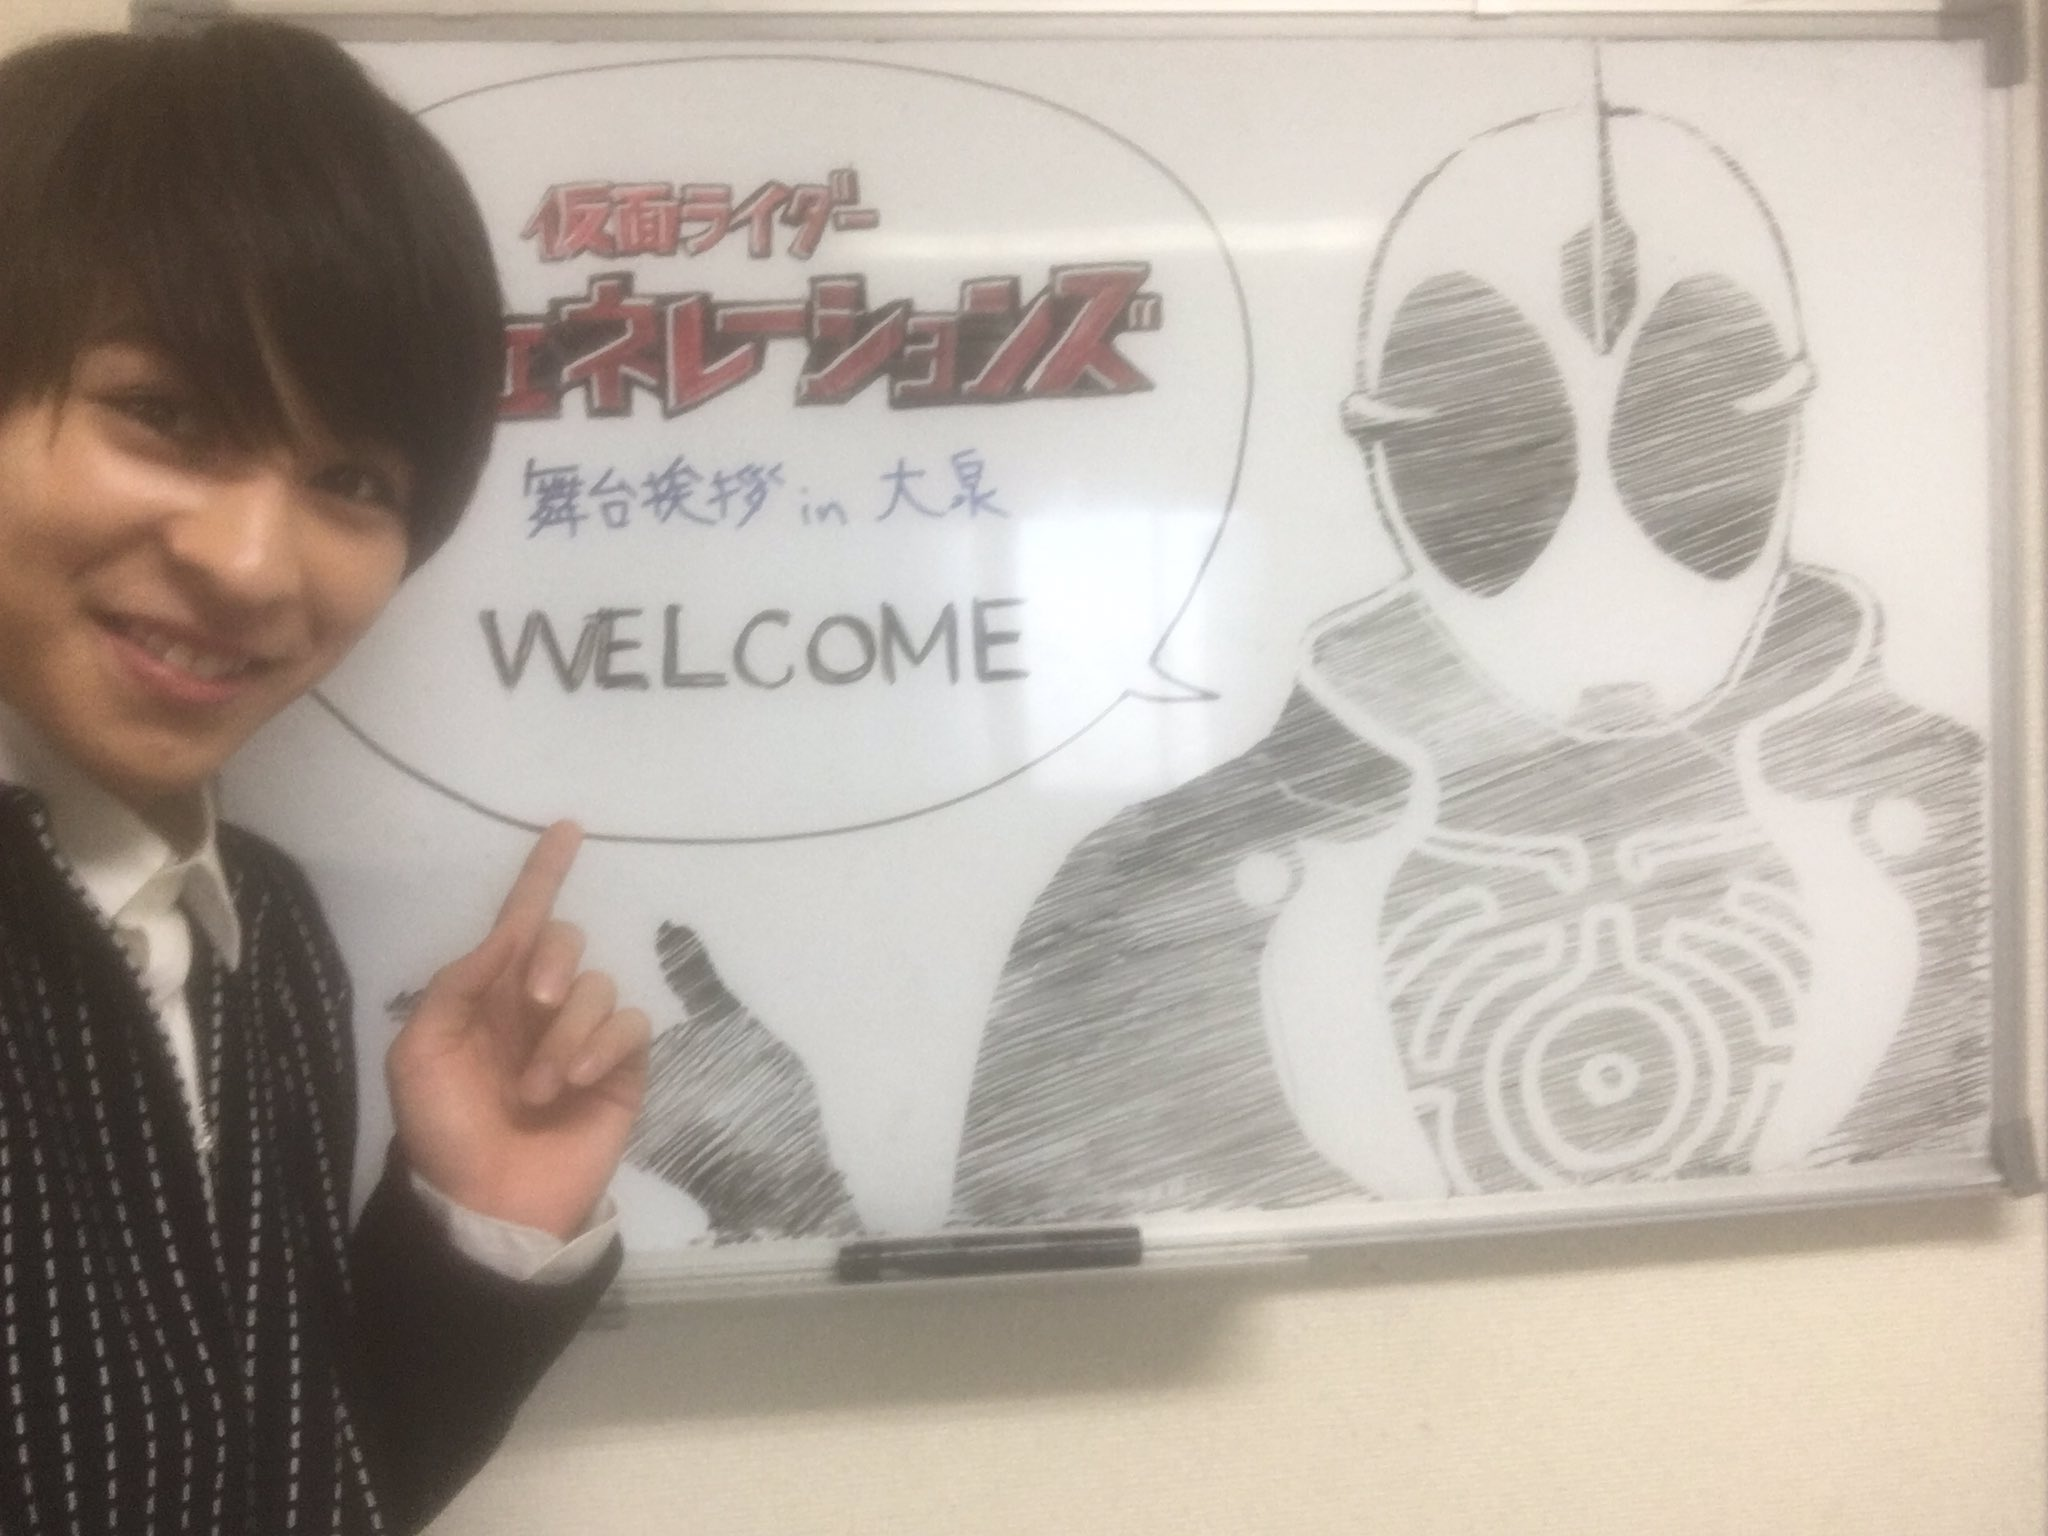 This Week in Toku Actor Blogs [12/4 to 12/9]